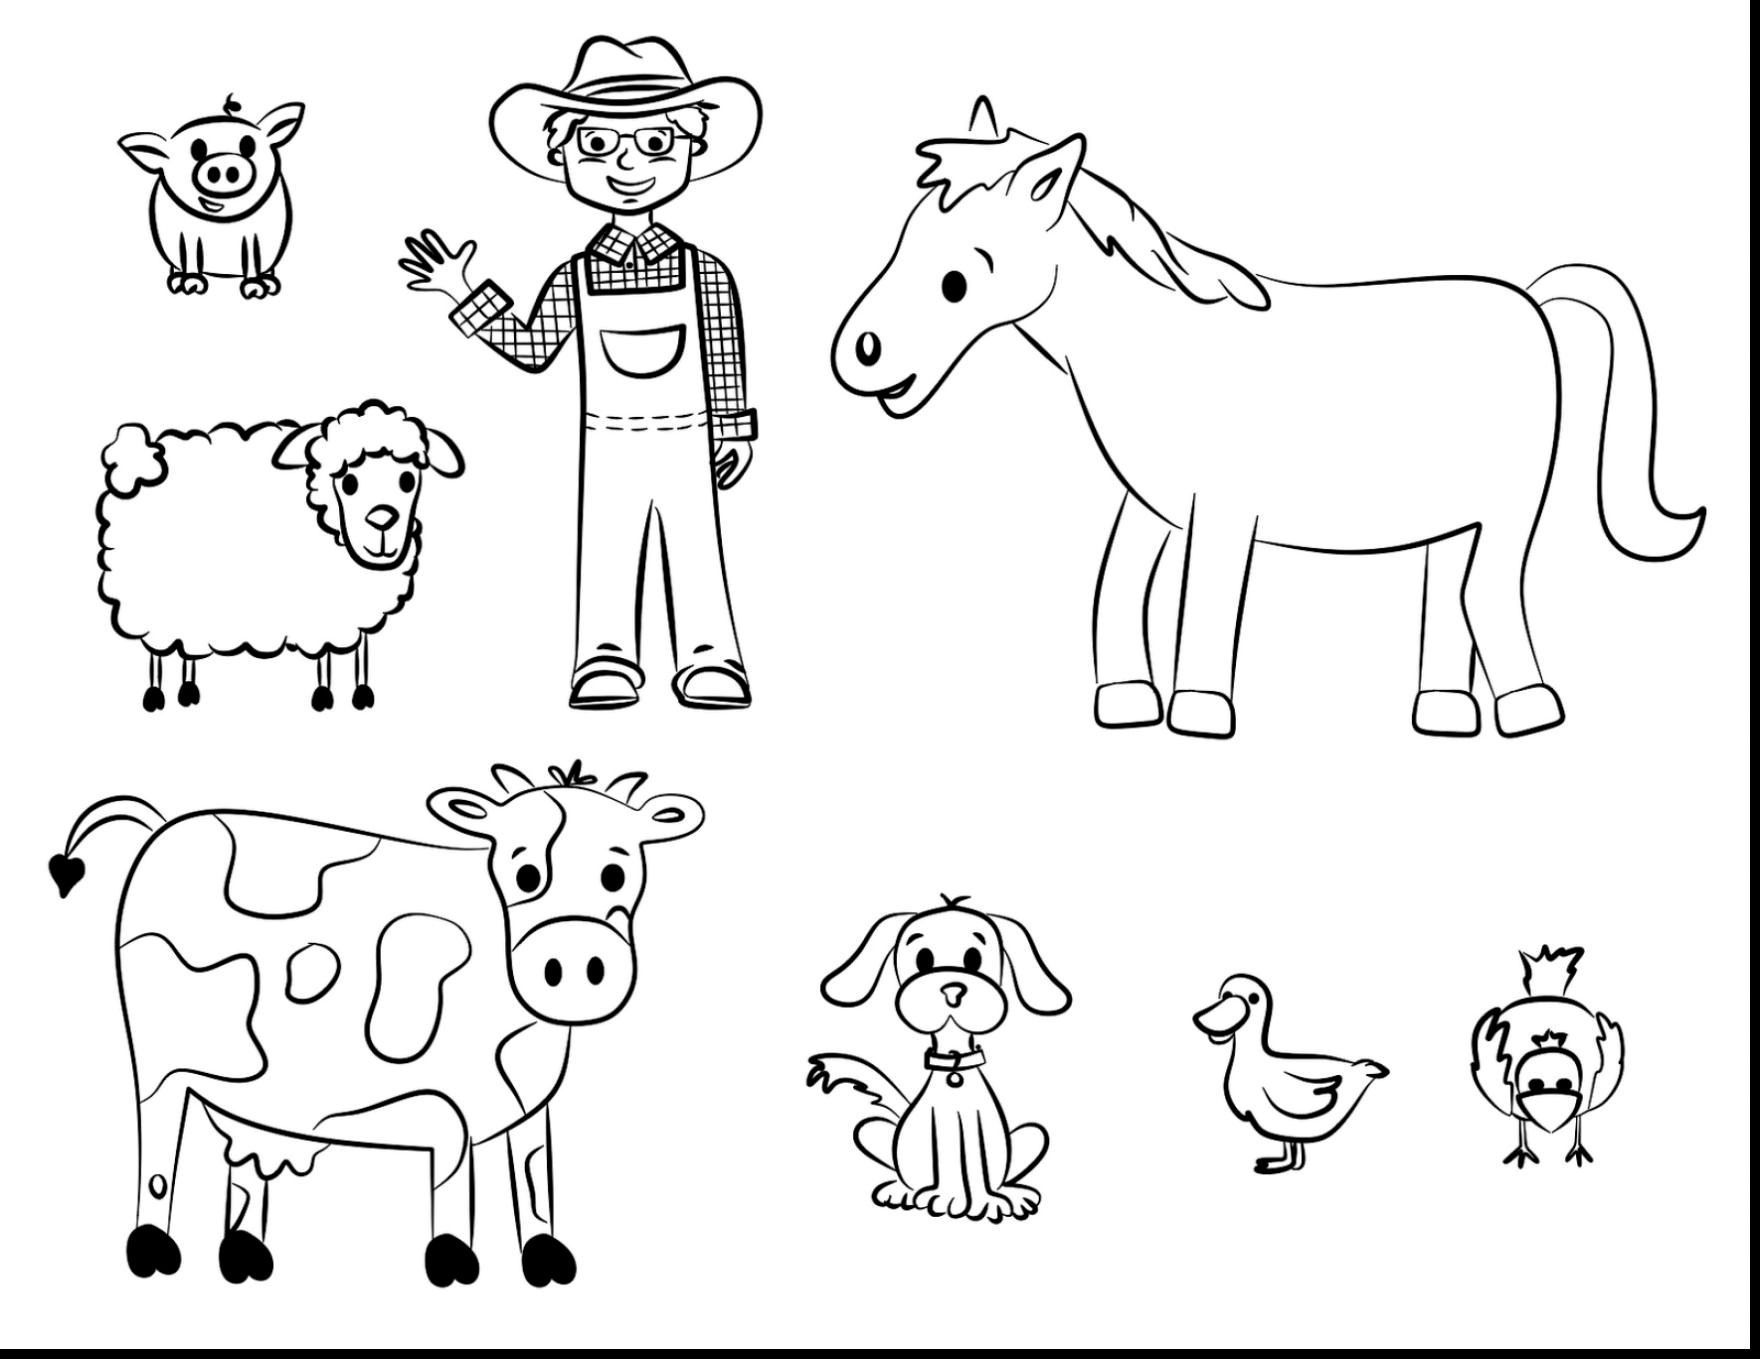 Free Printable Domestic Animals Coloring Pages Download | Coloring - Free Printable Farm Animals